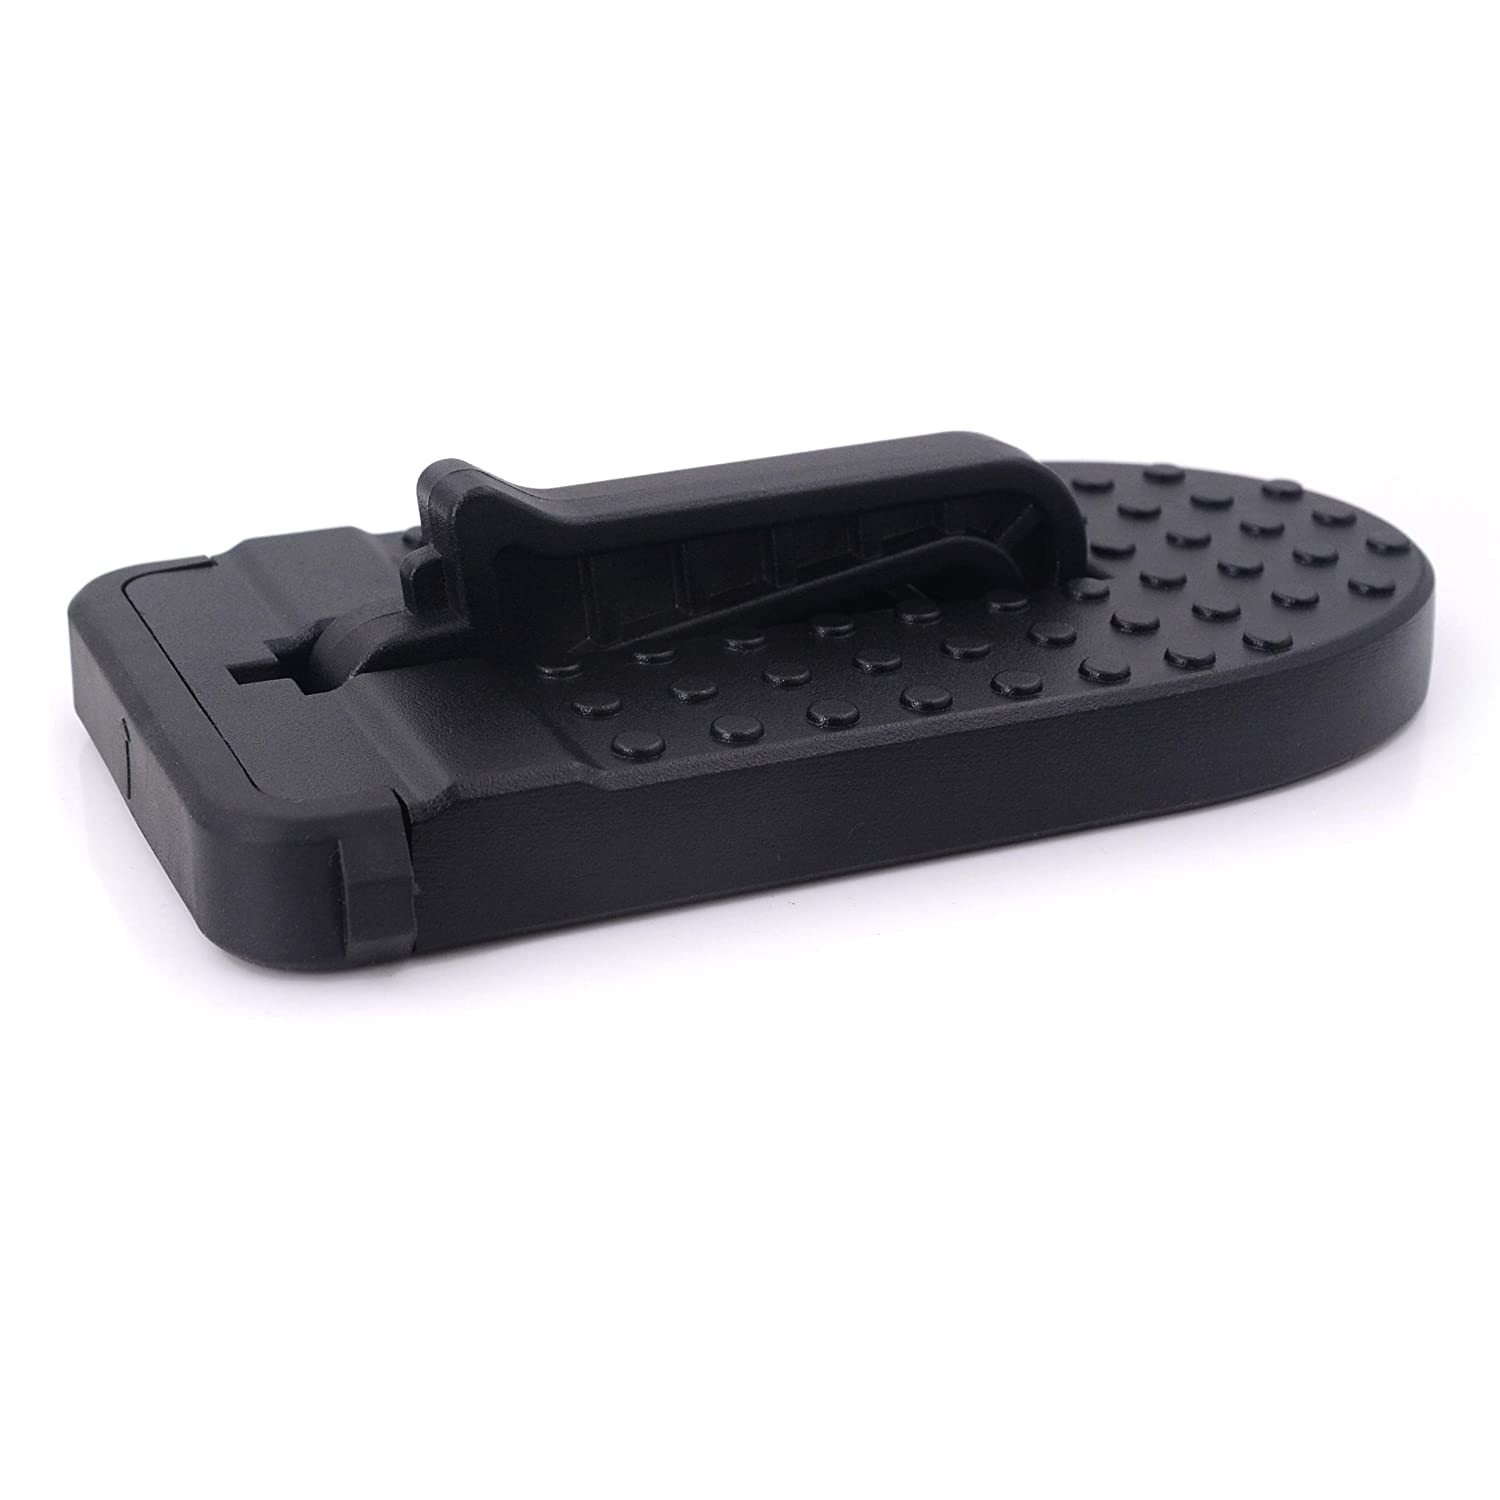 Support to 550lb iSaddle Car Doorstep Vehicle Rooftop Ladder Car U-Shaped Door Latch Foot Pegs for Rooftop Roof-Rack All Vehicles Must Have